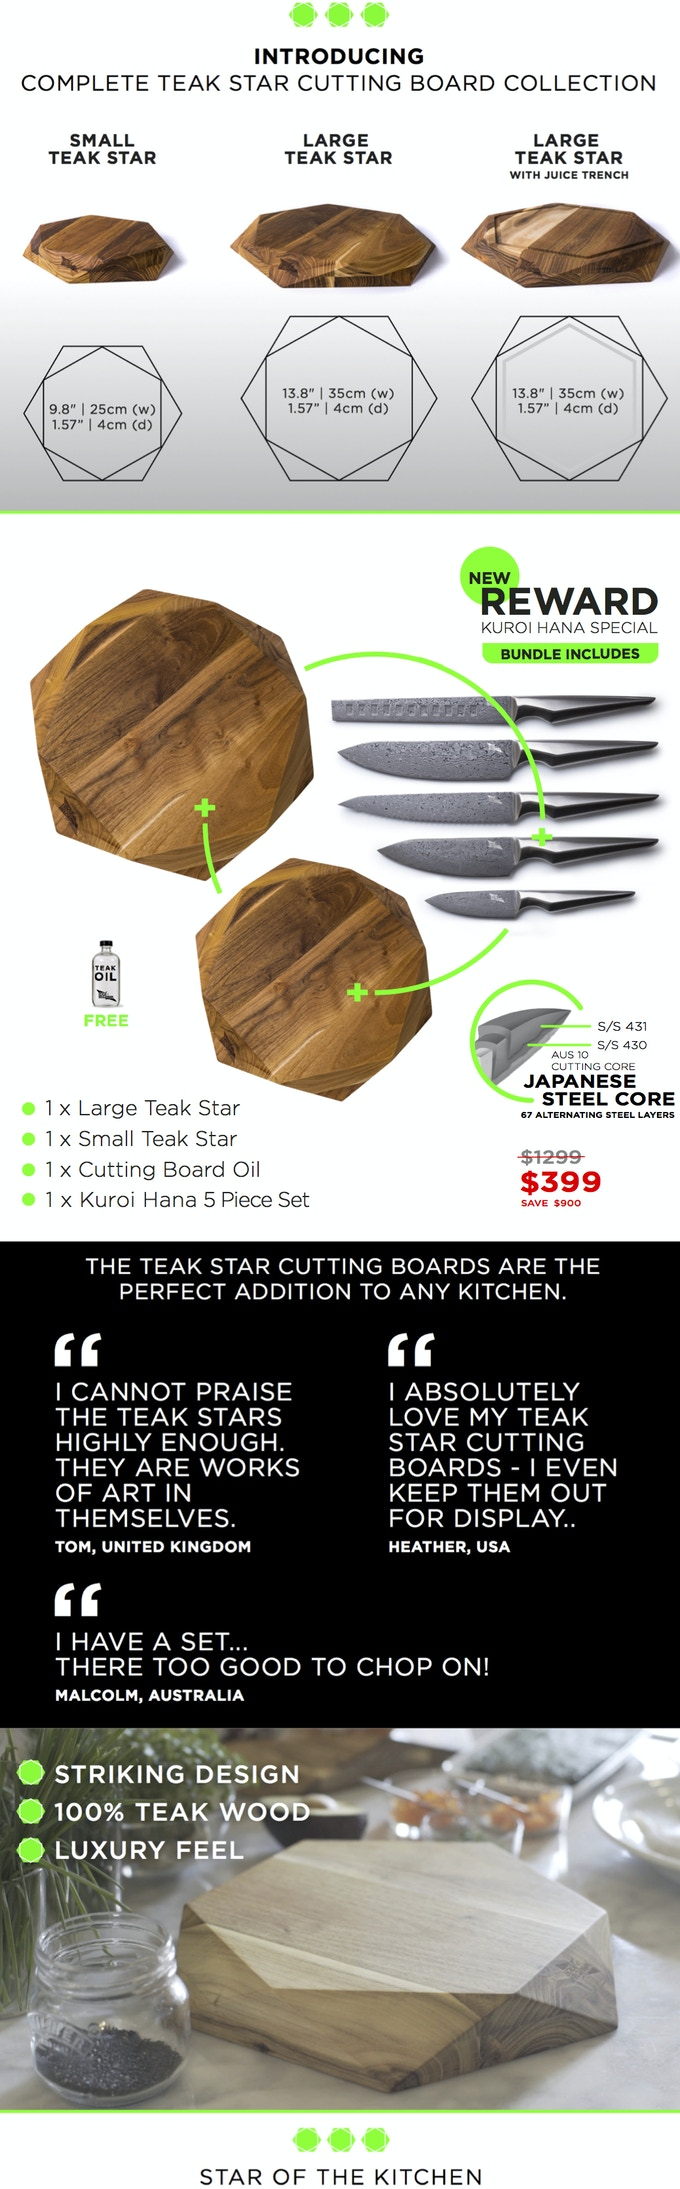 TEAK STAR CUTTING BOARD COLLECTION by EDGE of BELGRAVIA by Edge of